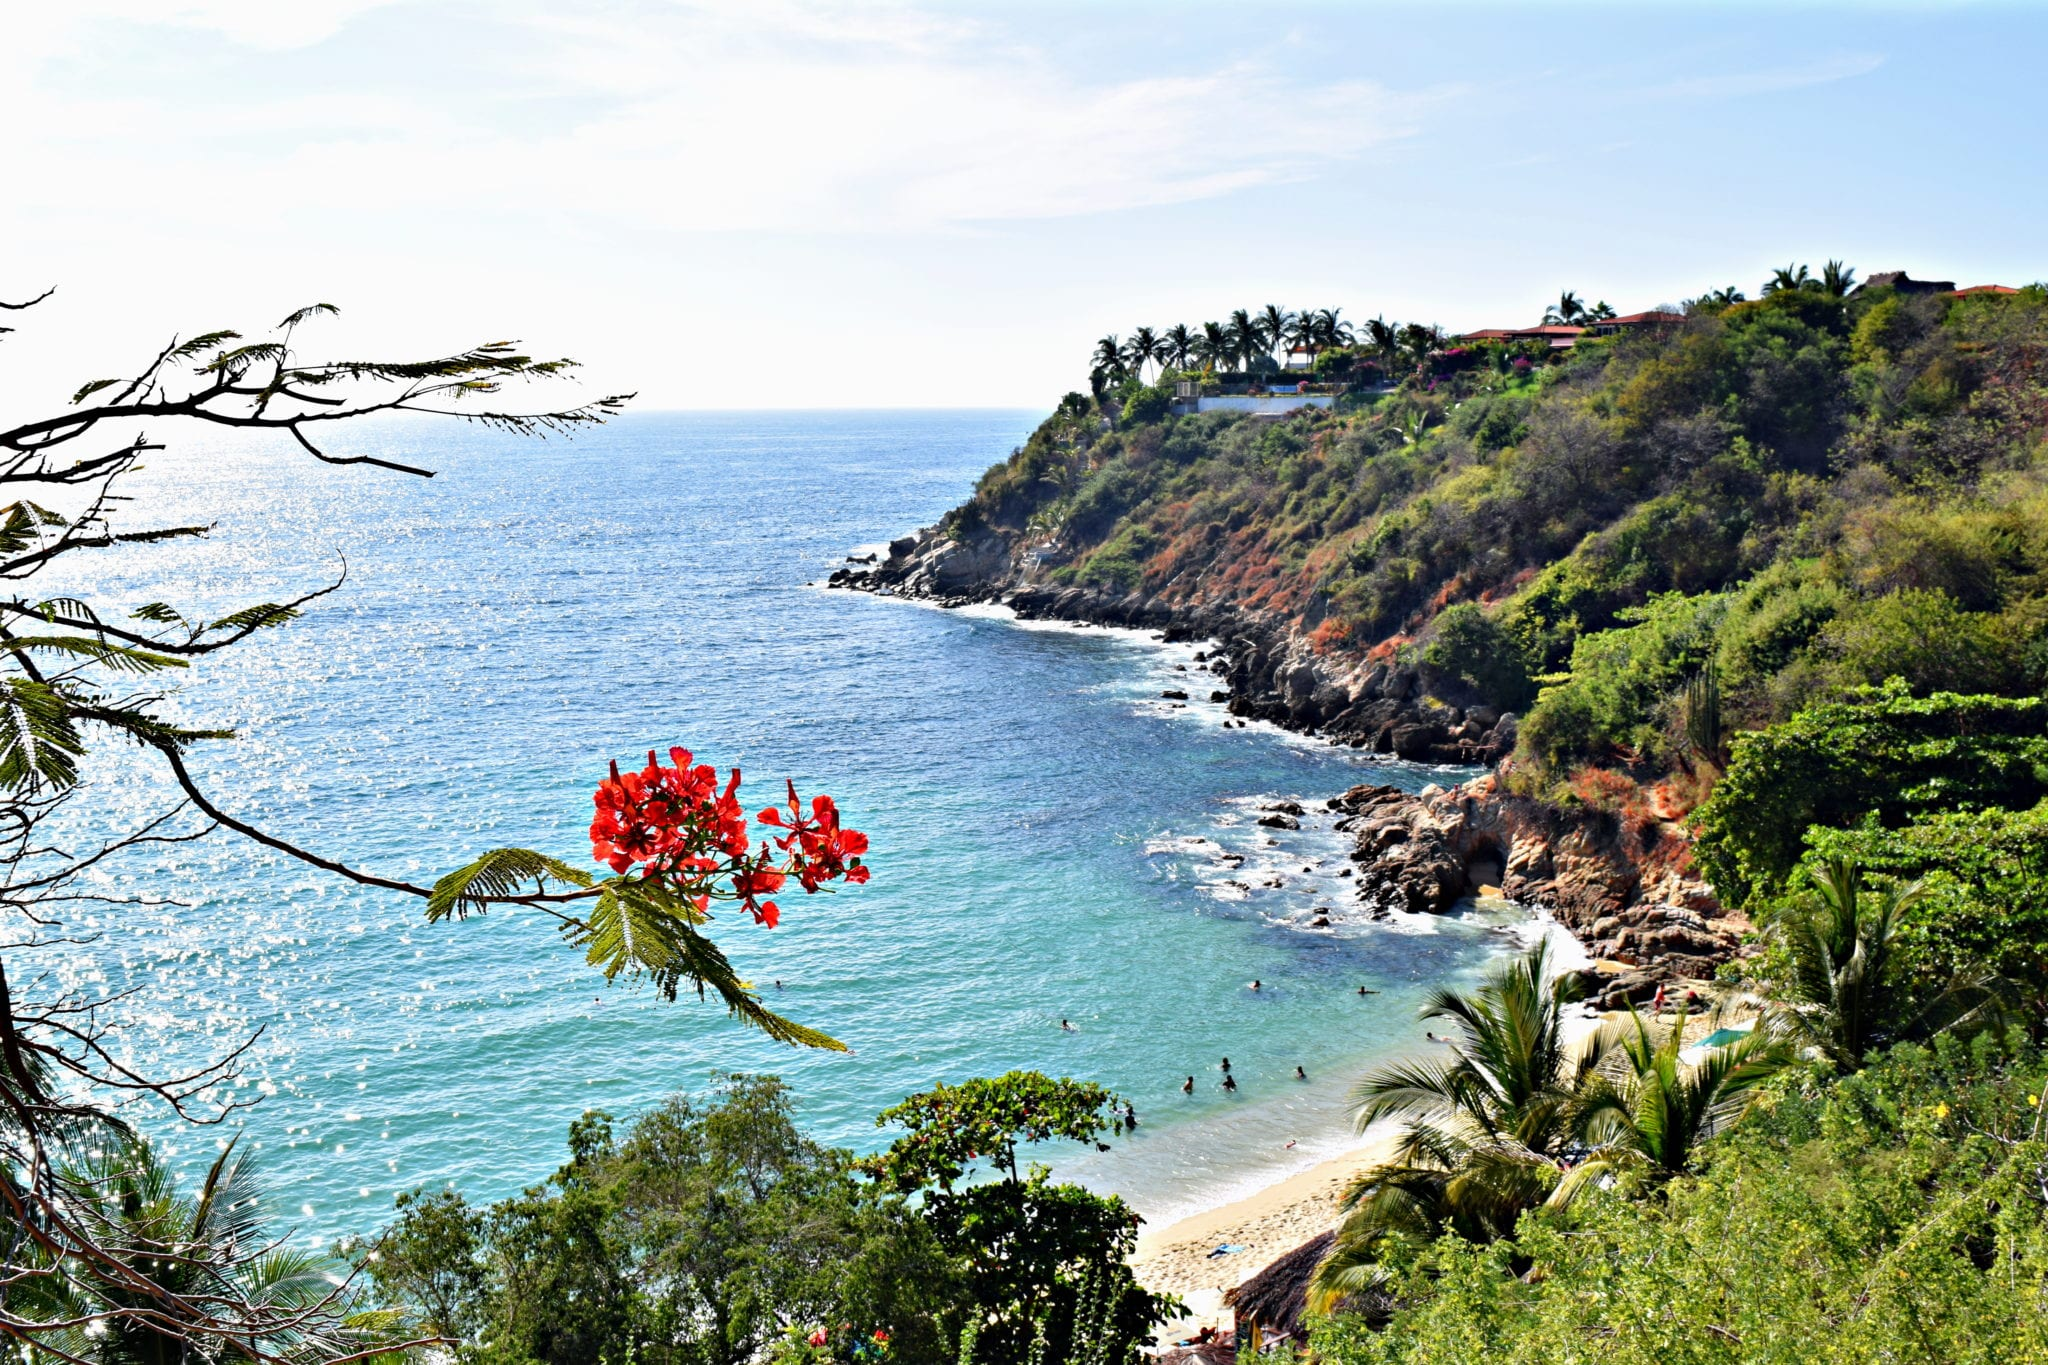 view of pacific ocean in puerto escondido mexico with red flower in the foreground. public beaches are a cheap way to make the most of your mexico travel budget